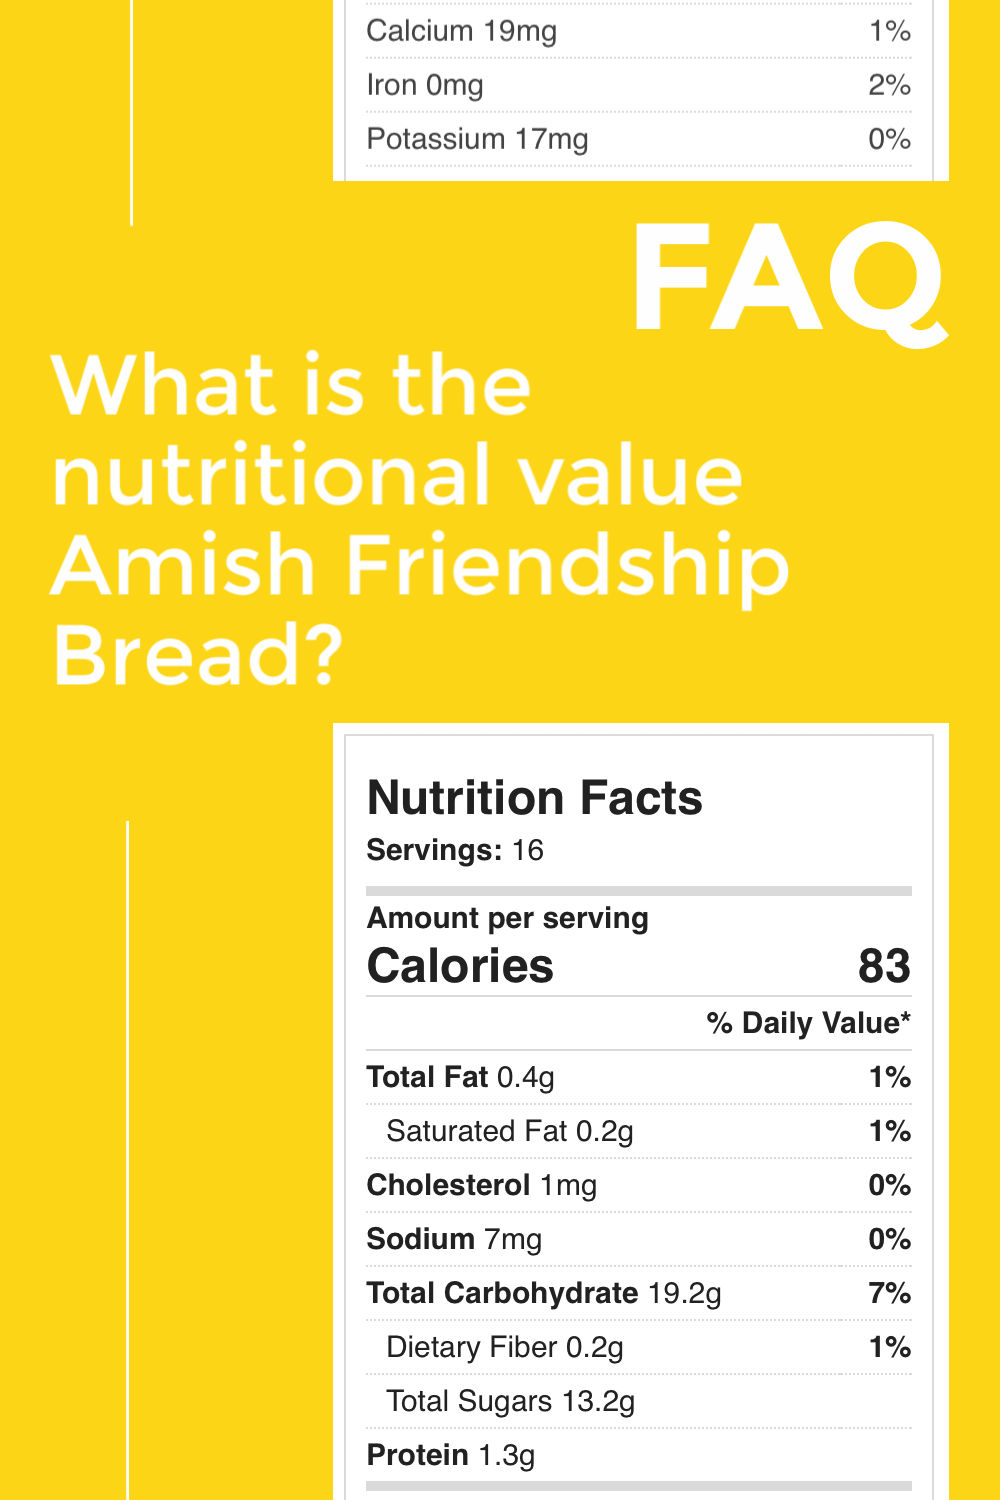 FAQ - What is the nutritional value for Amish Friendship Bread?